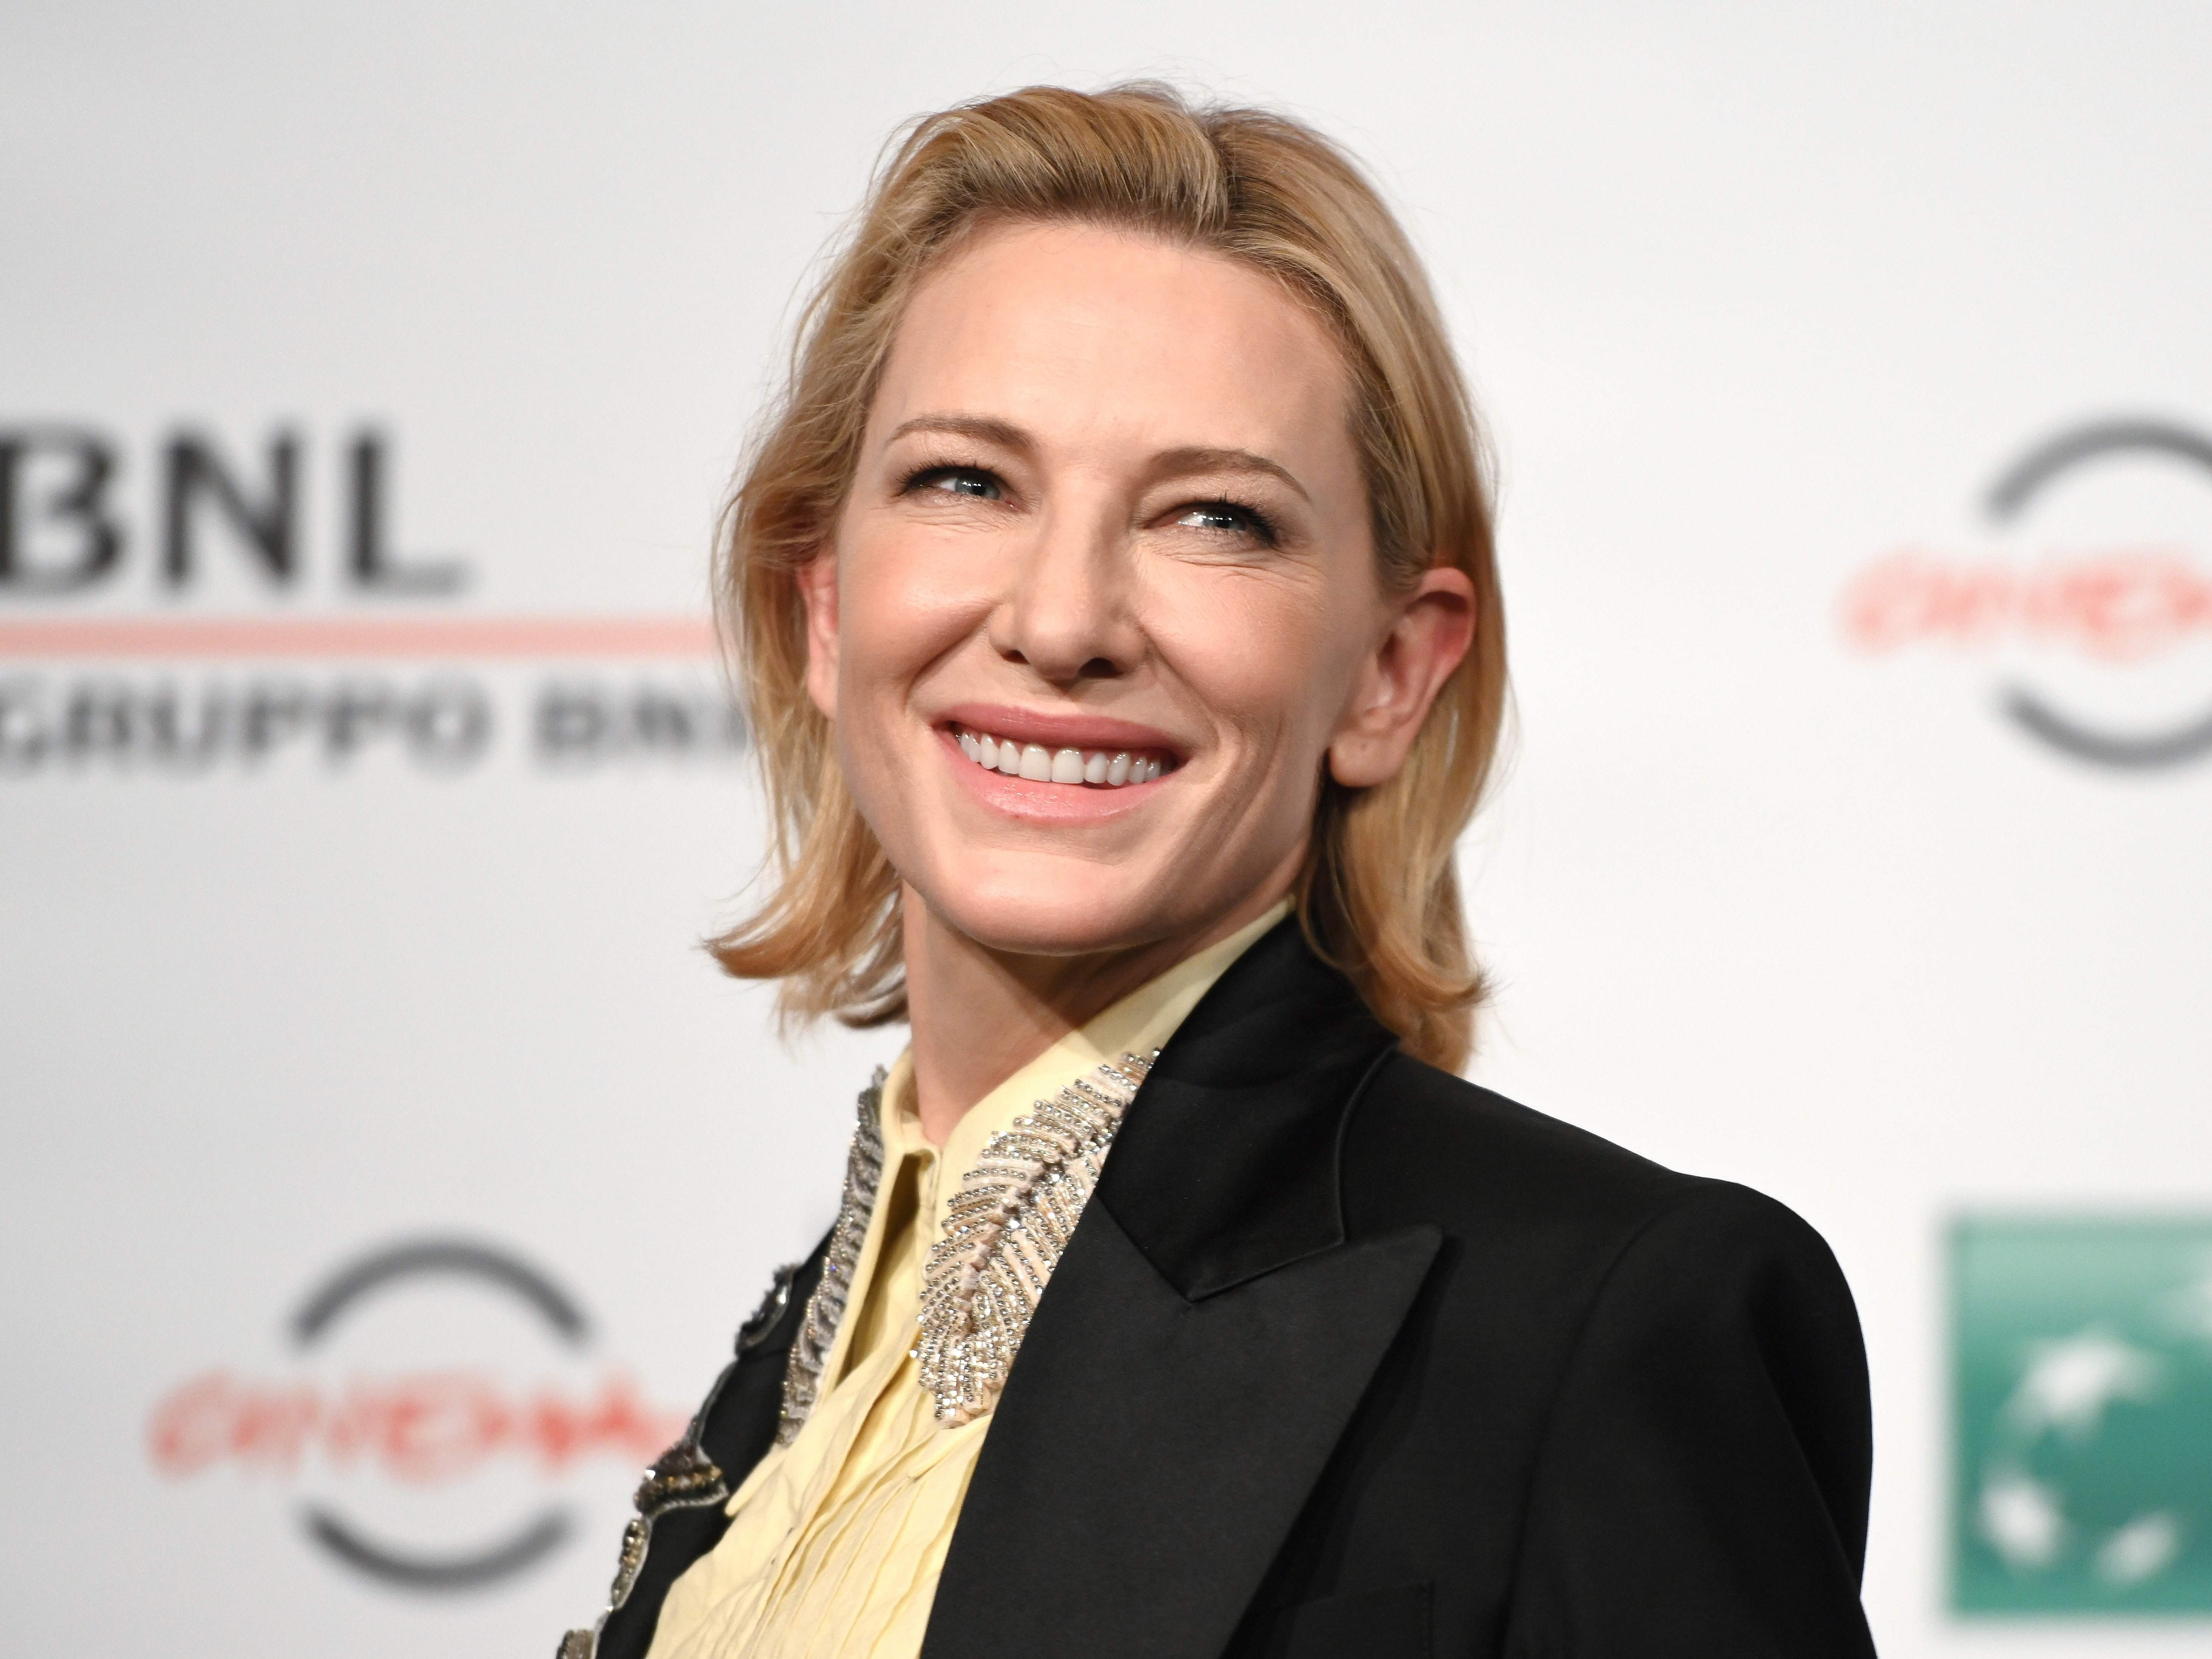 Exclusive: Cate Blanchett has horns and uterine pain in starry 'Documentary Now!' trailer